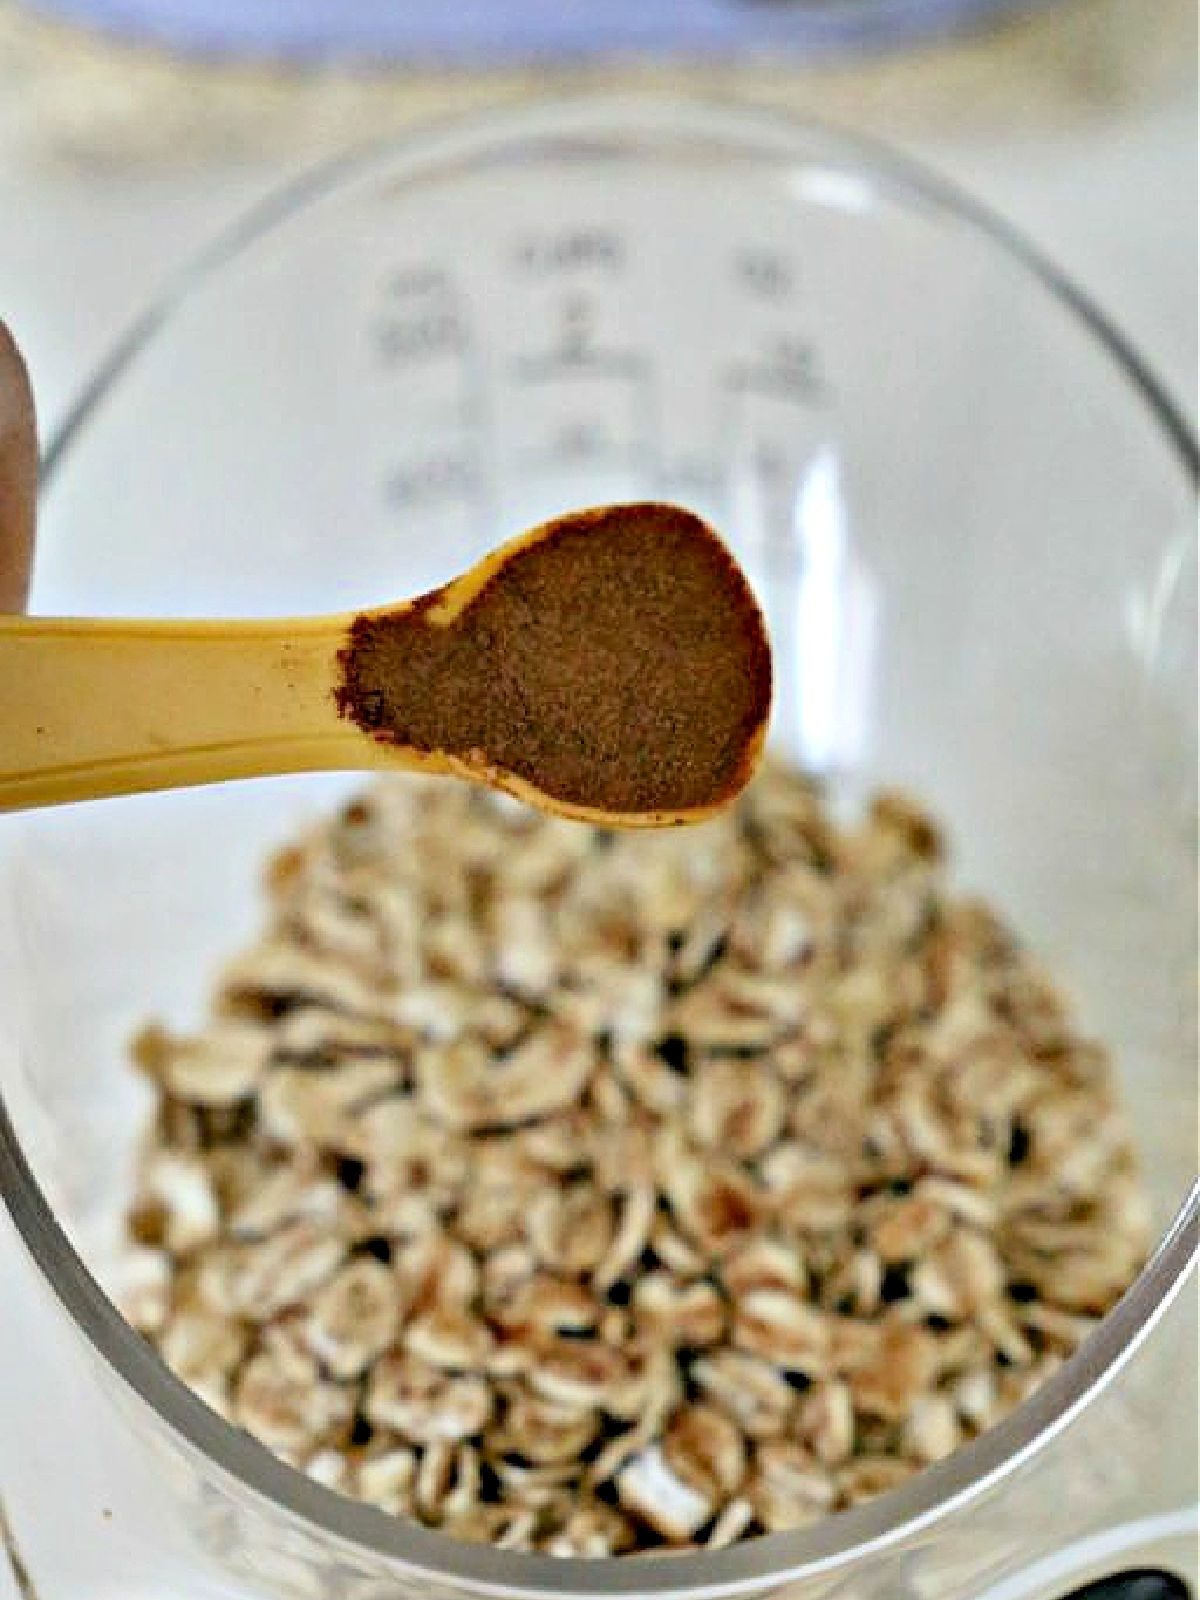 Teaspoon of cinnamon being poured into measuring cup with oats.